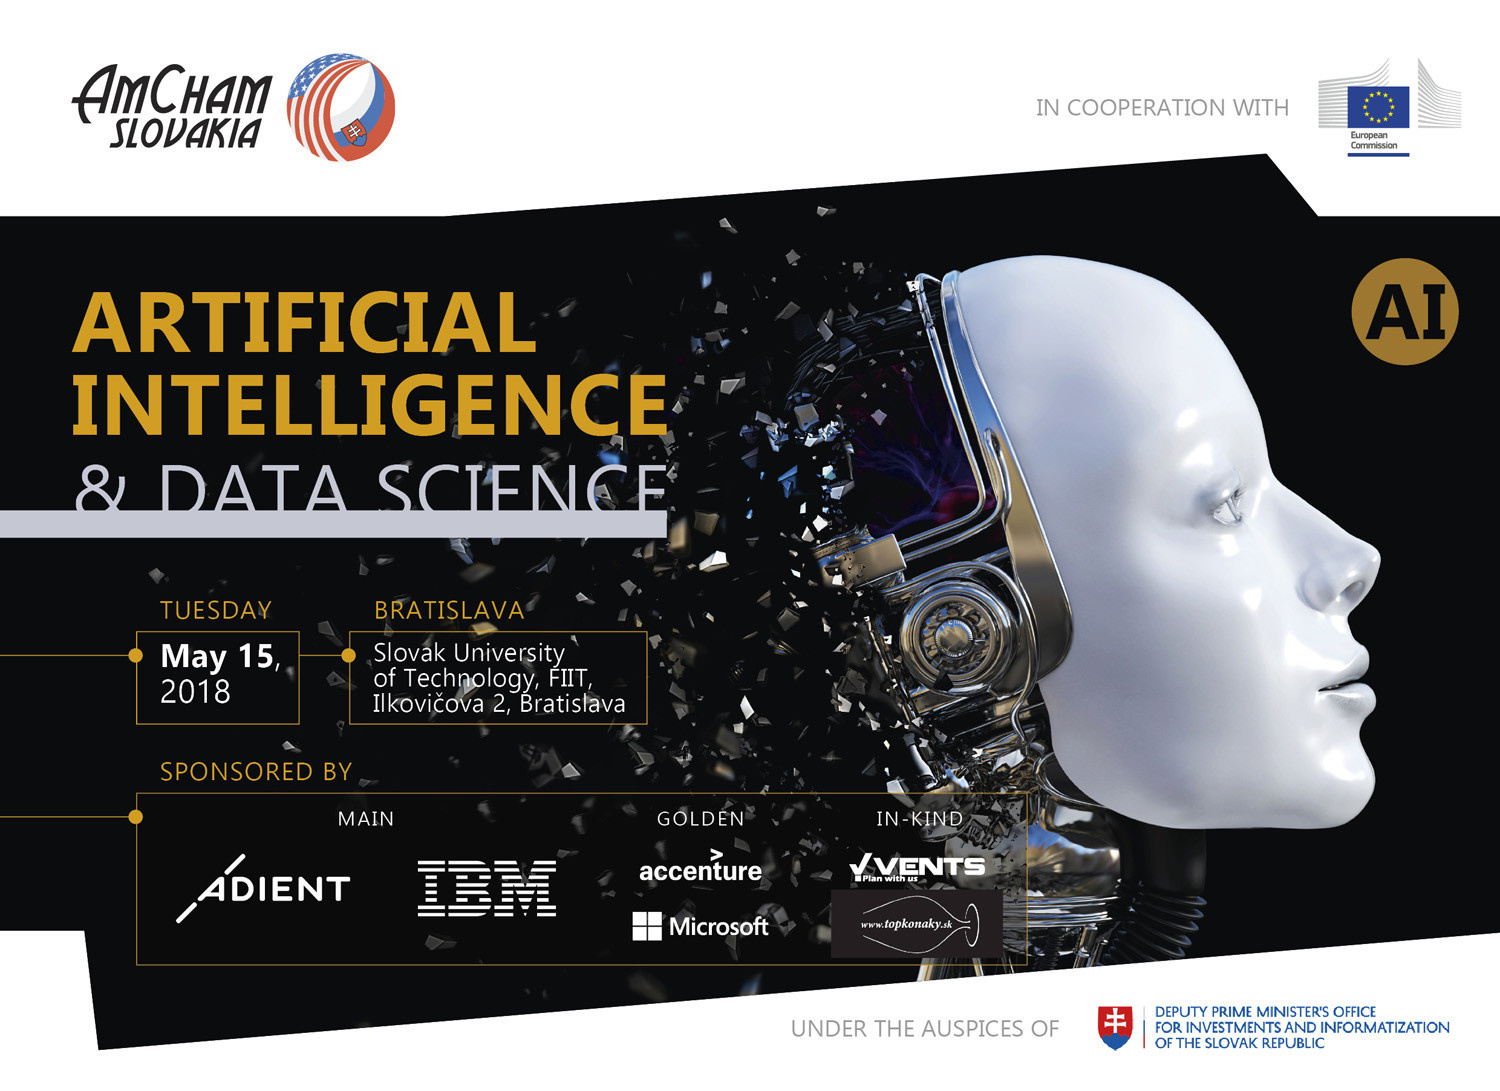 Artificial Intelligence & Data Science Conference